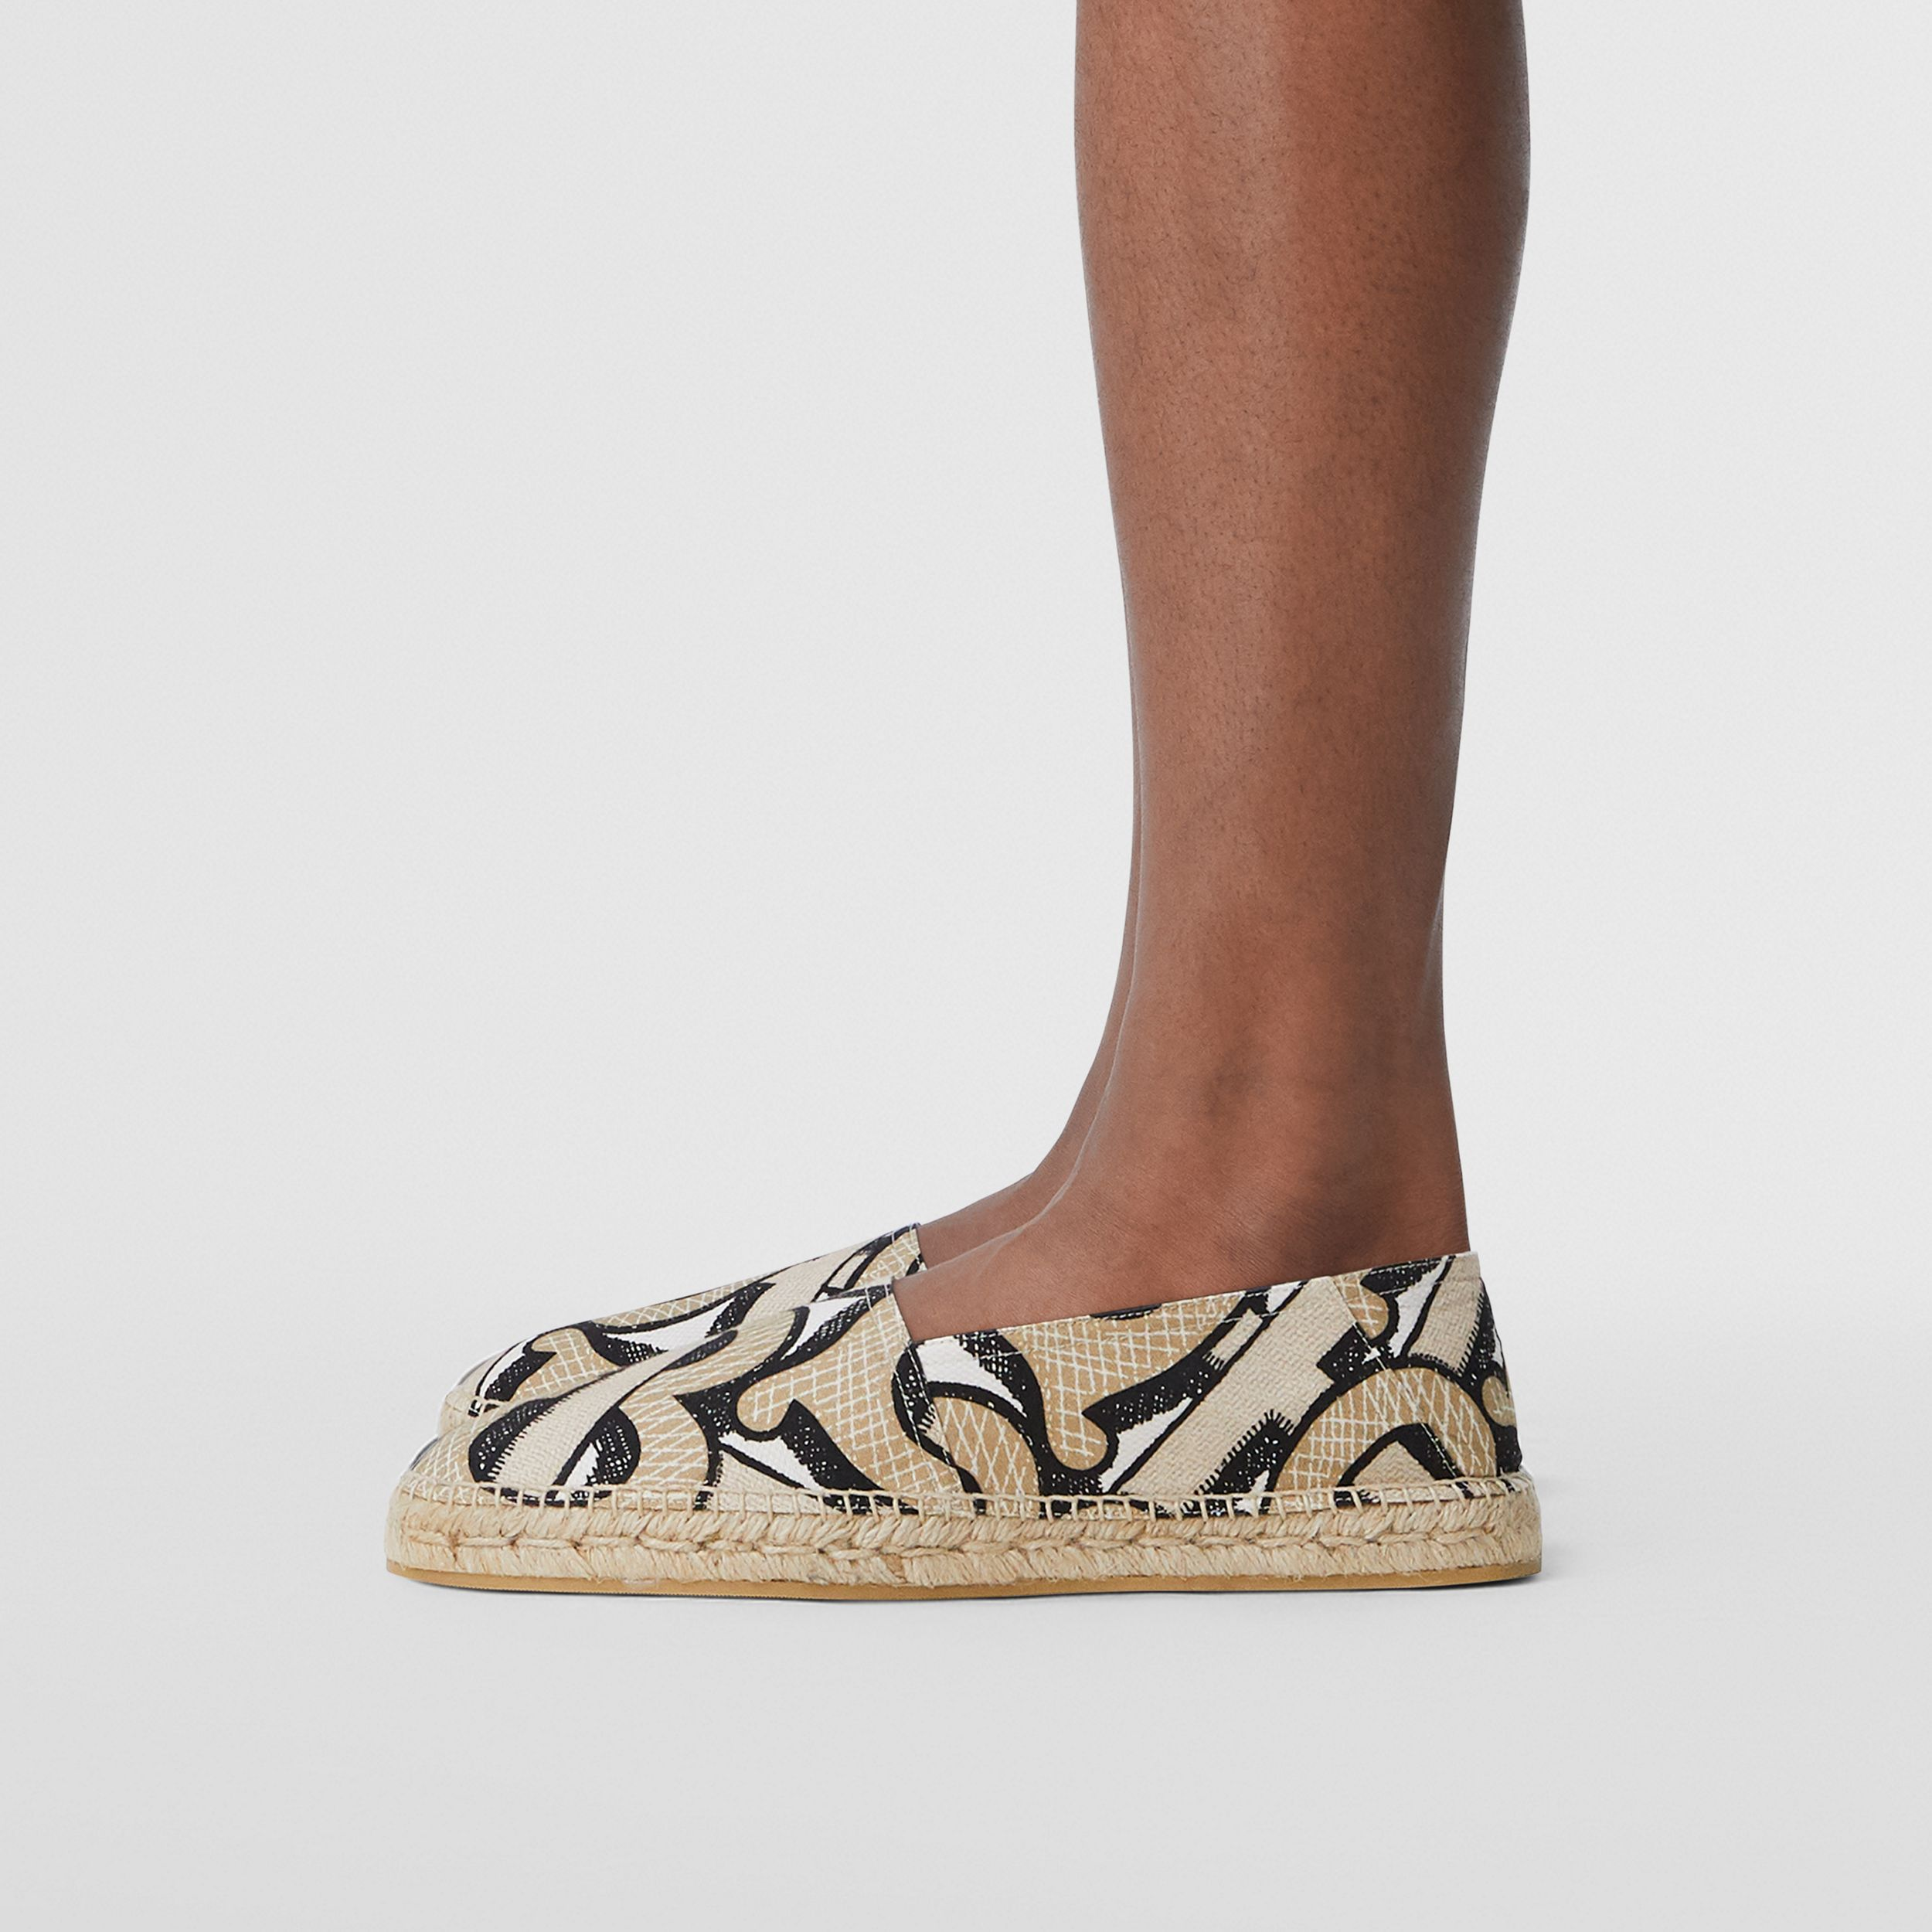 Monogram Print Cotton Canvas Espadrilles in Dark Beige | Burberry - 3